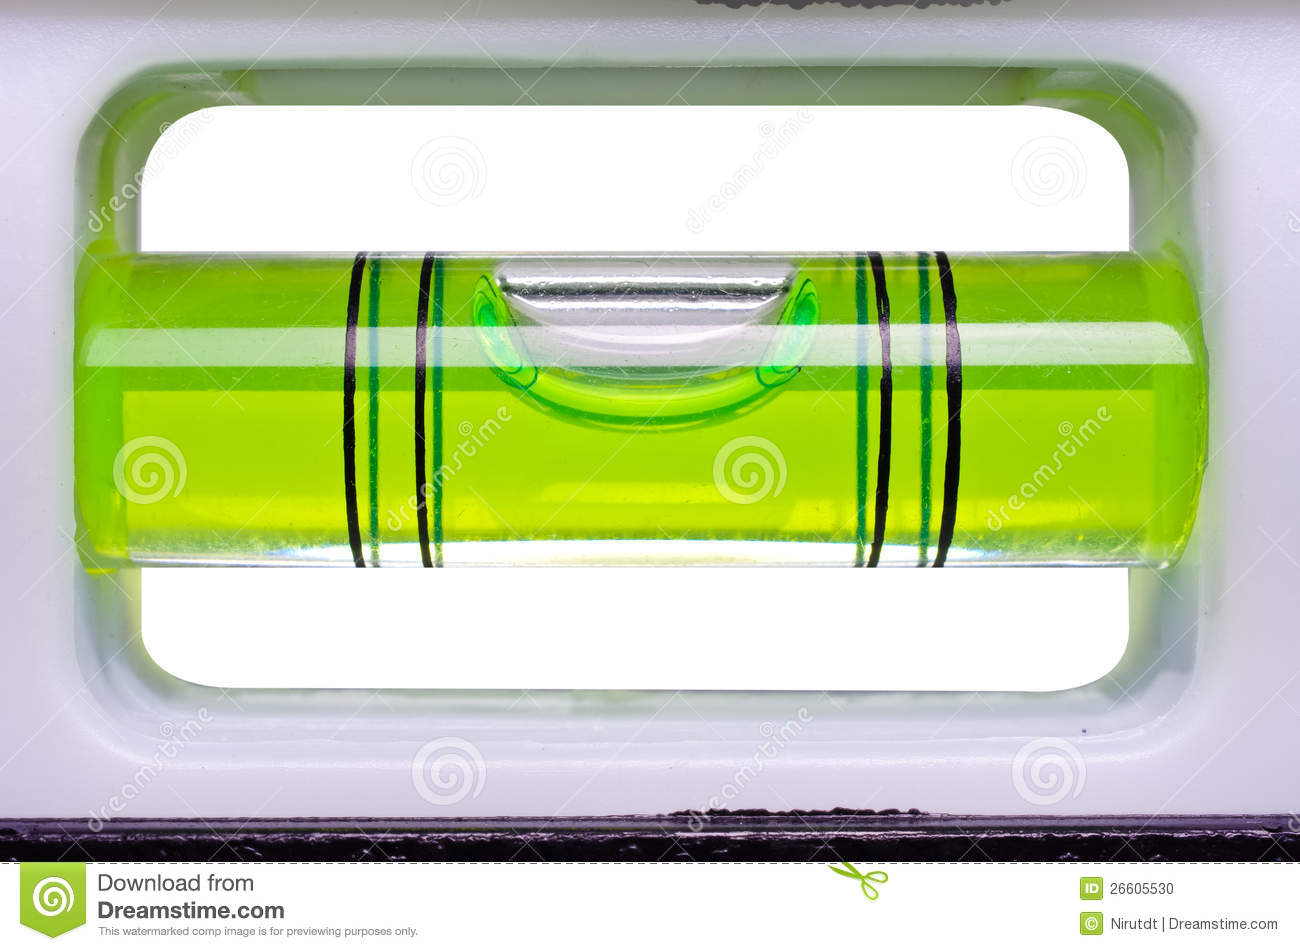 Green bubble level isolated on a white background.